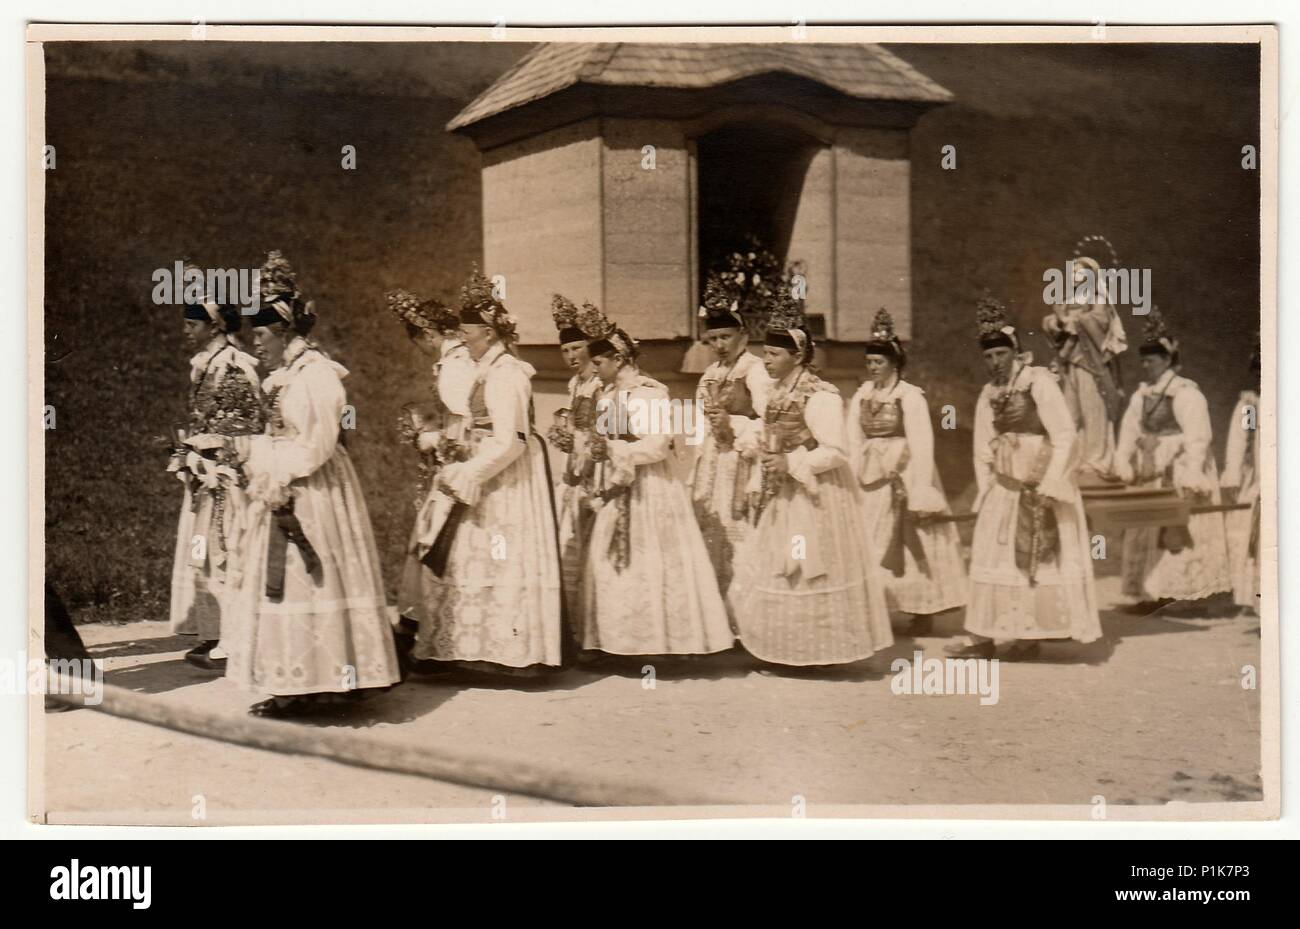 GERMANY - CIRCA 1930s: Vintage photo shows young women during religion procession. Women wear folk costums. Black & white antique photography. Stock Photo